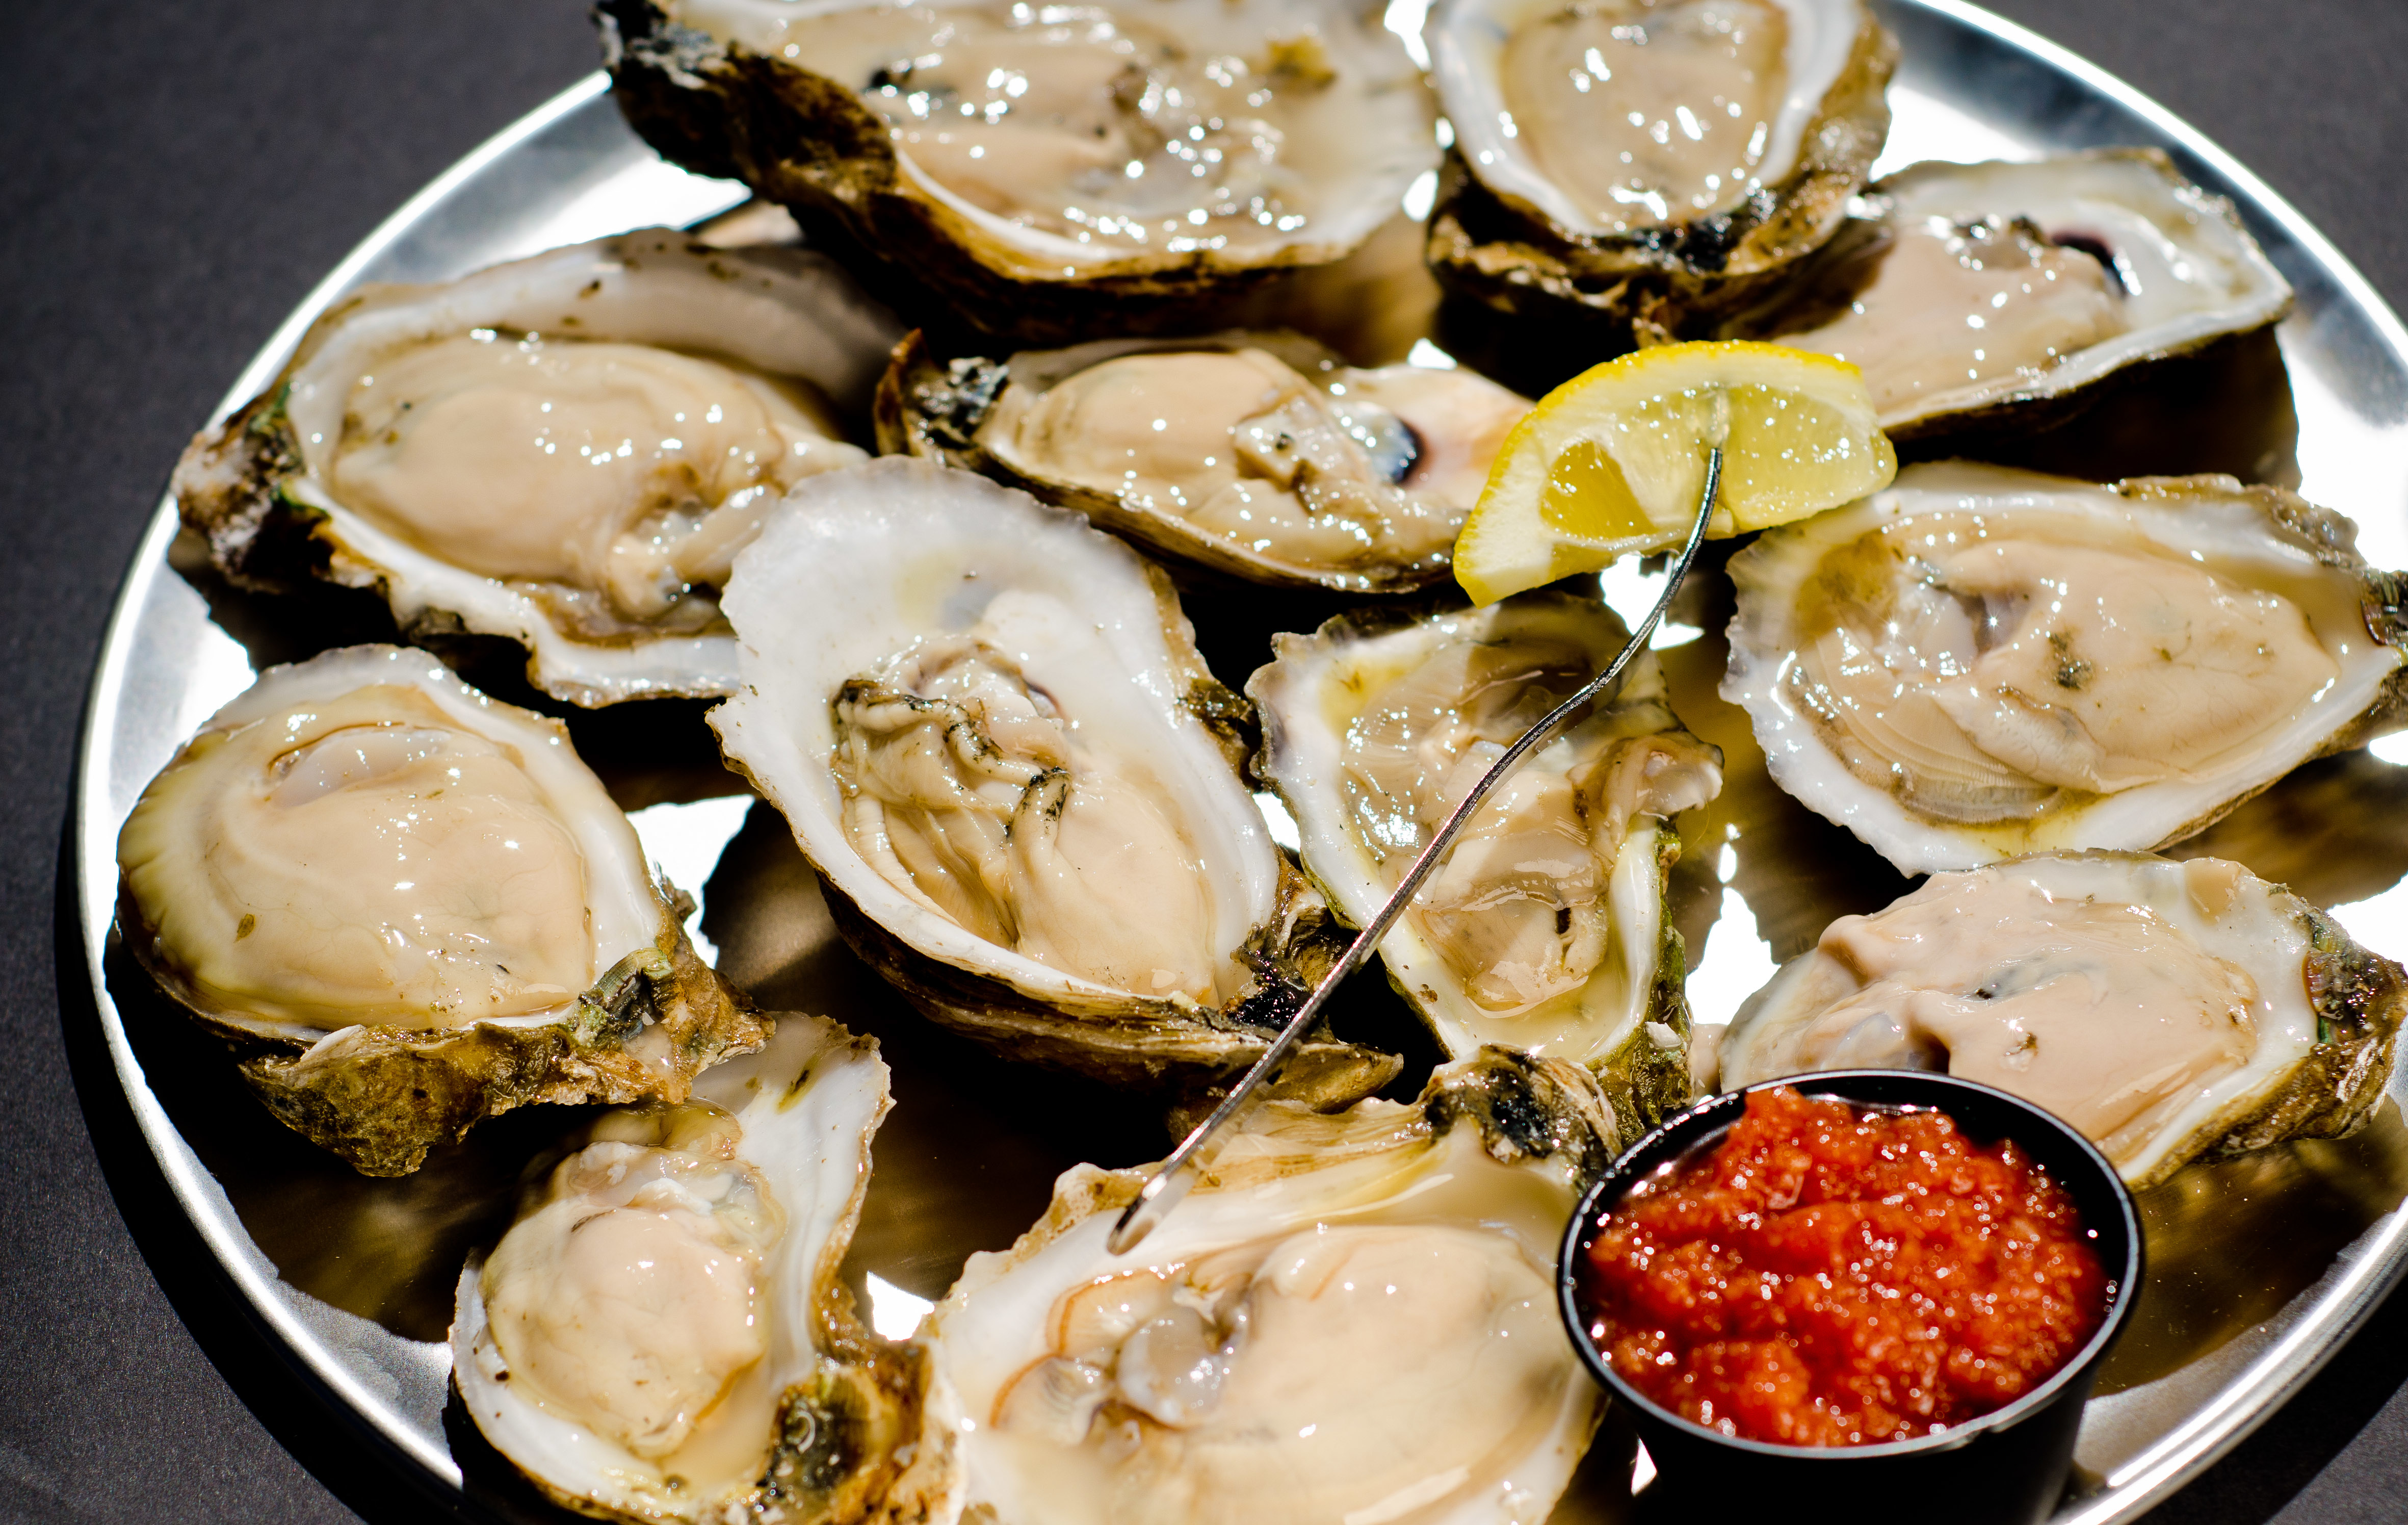 O'Quigley's Seafood Steamer & Oyster Sports Bar